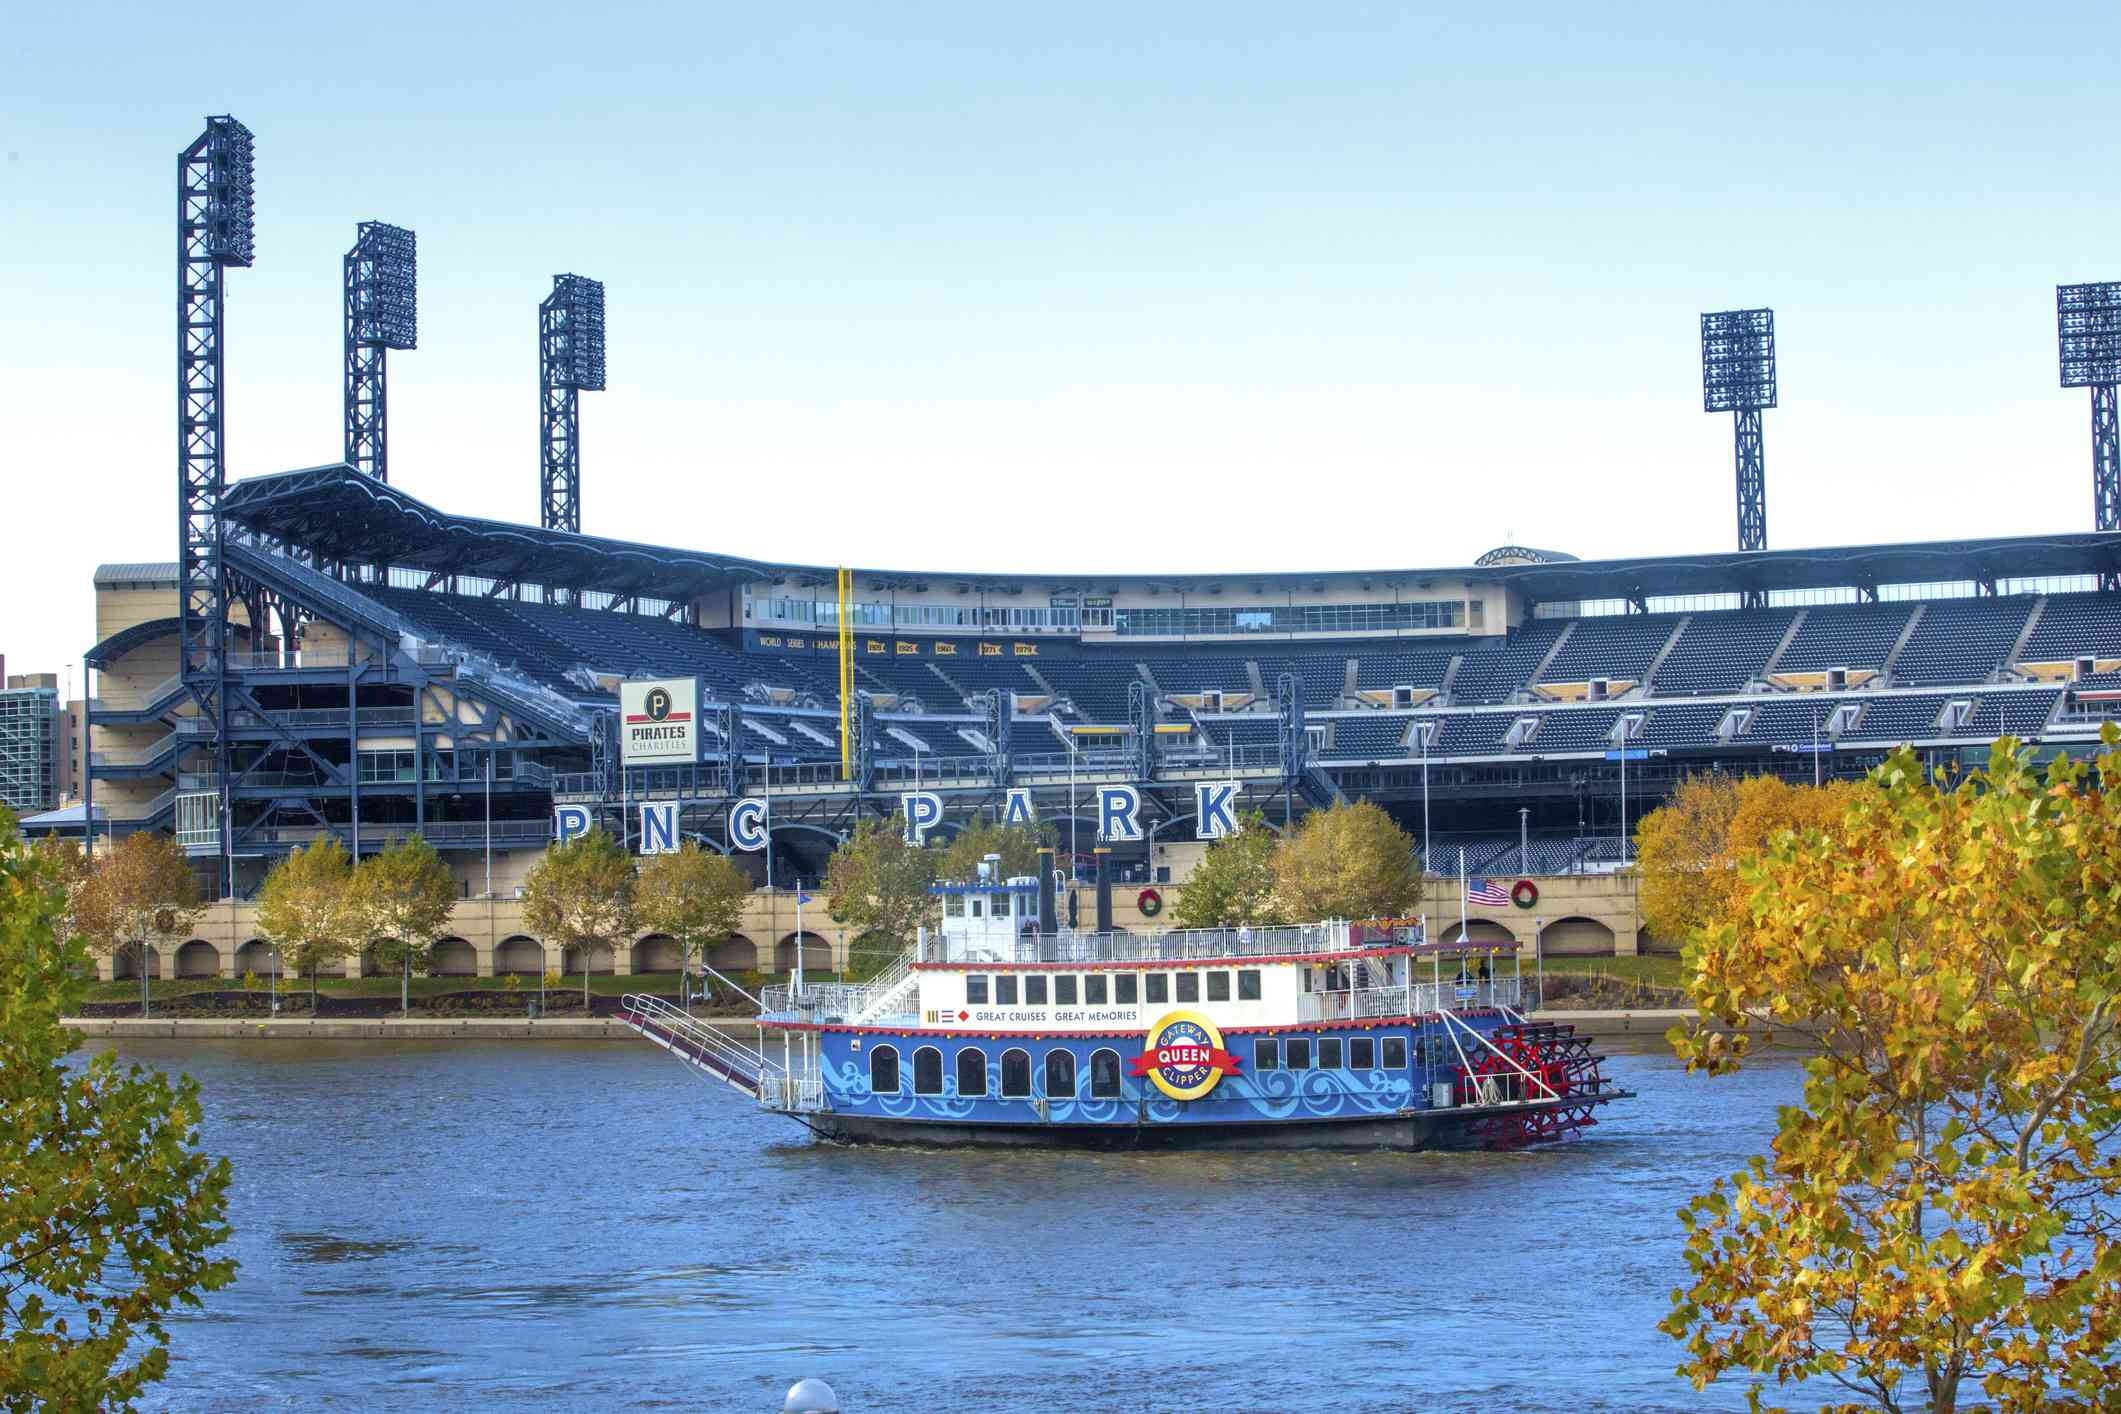 Riverboat in Pittsburgh